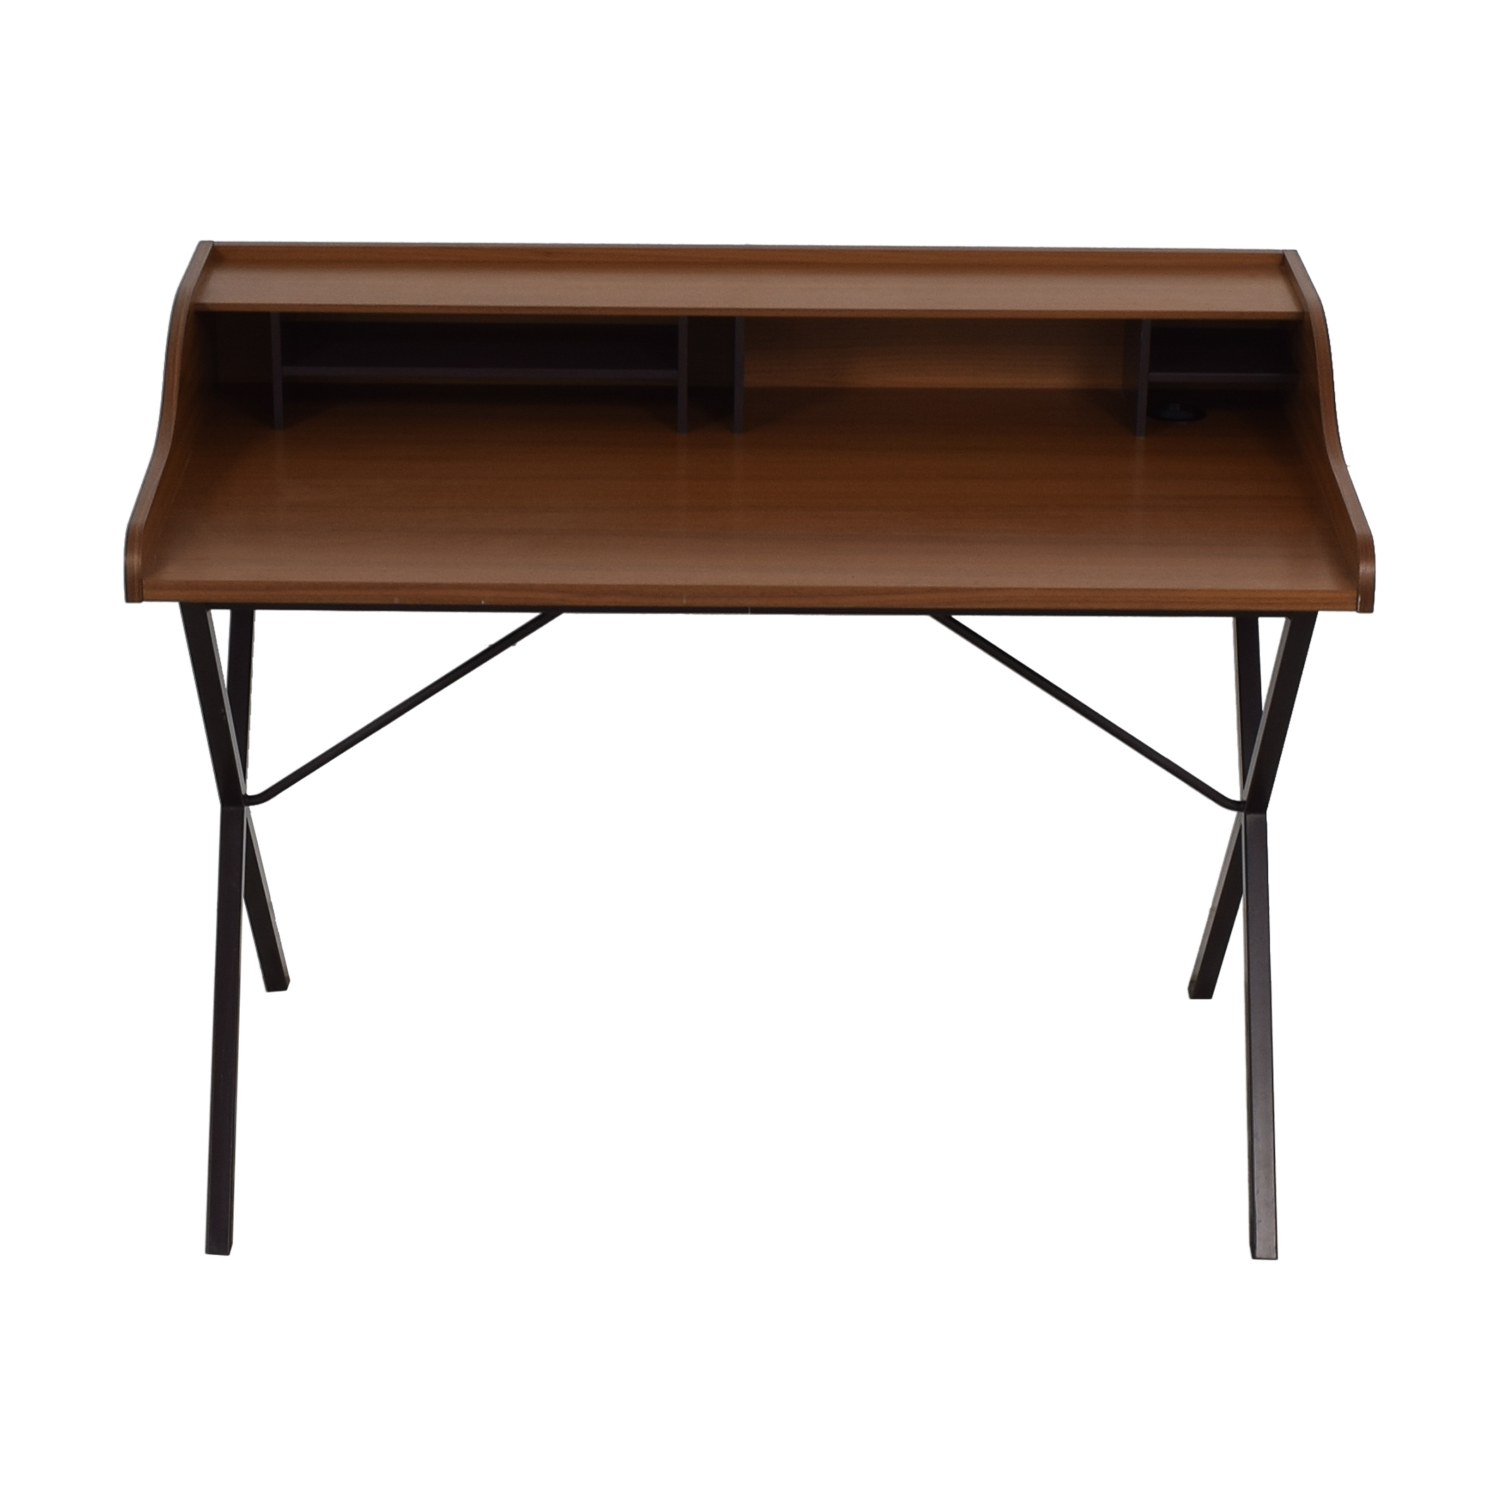 Ligne Roset Ligne Roset Pierre Paulin Ursuline Writing Desk Sofas